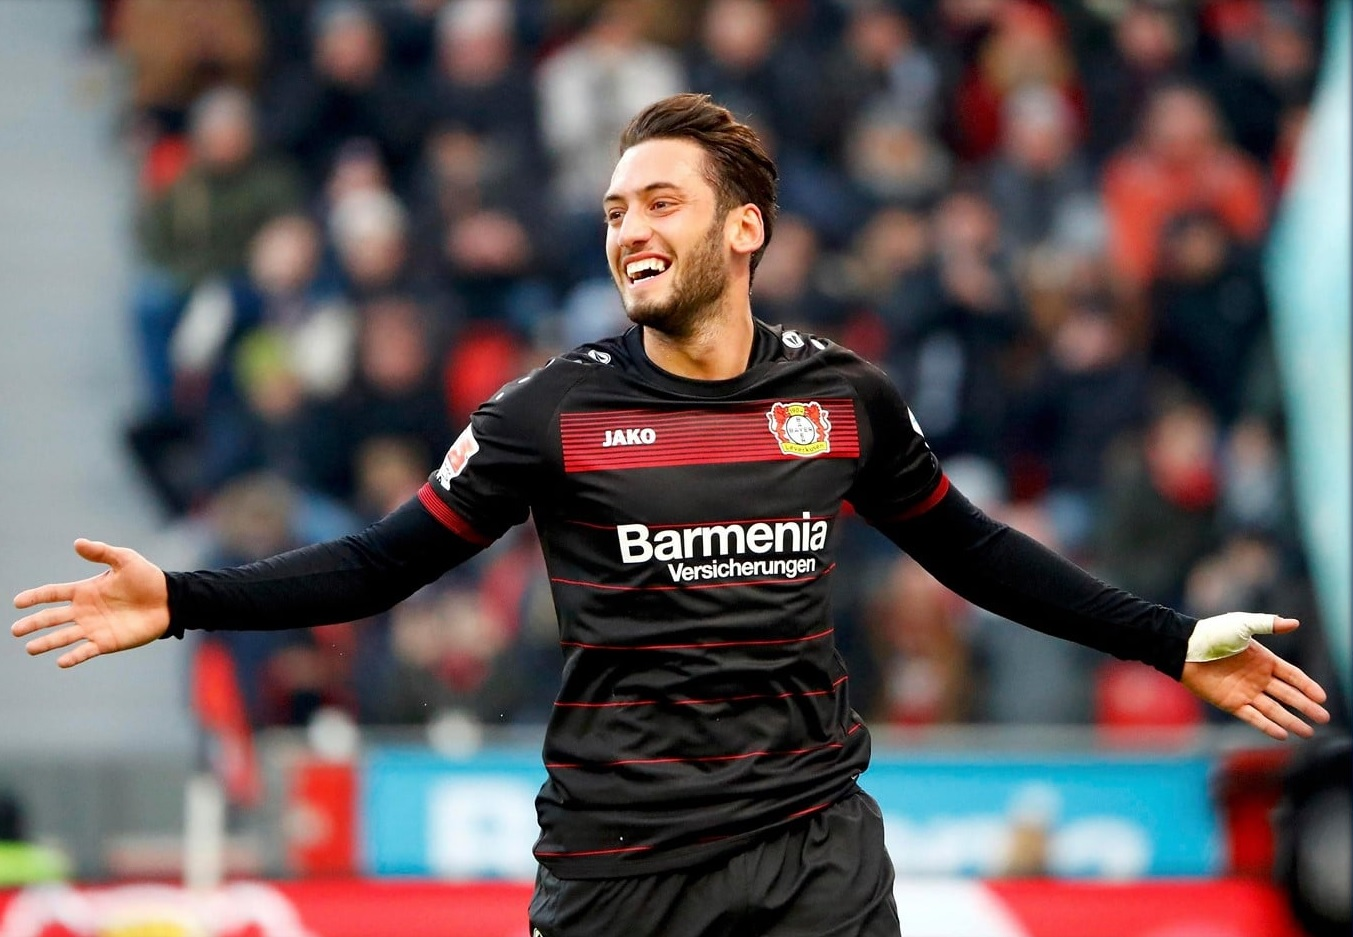 the experession on Calhanoglu's face when he scores a goal was priceless.